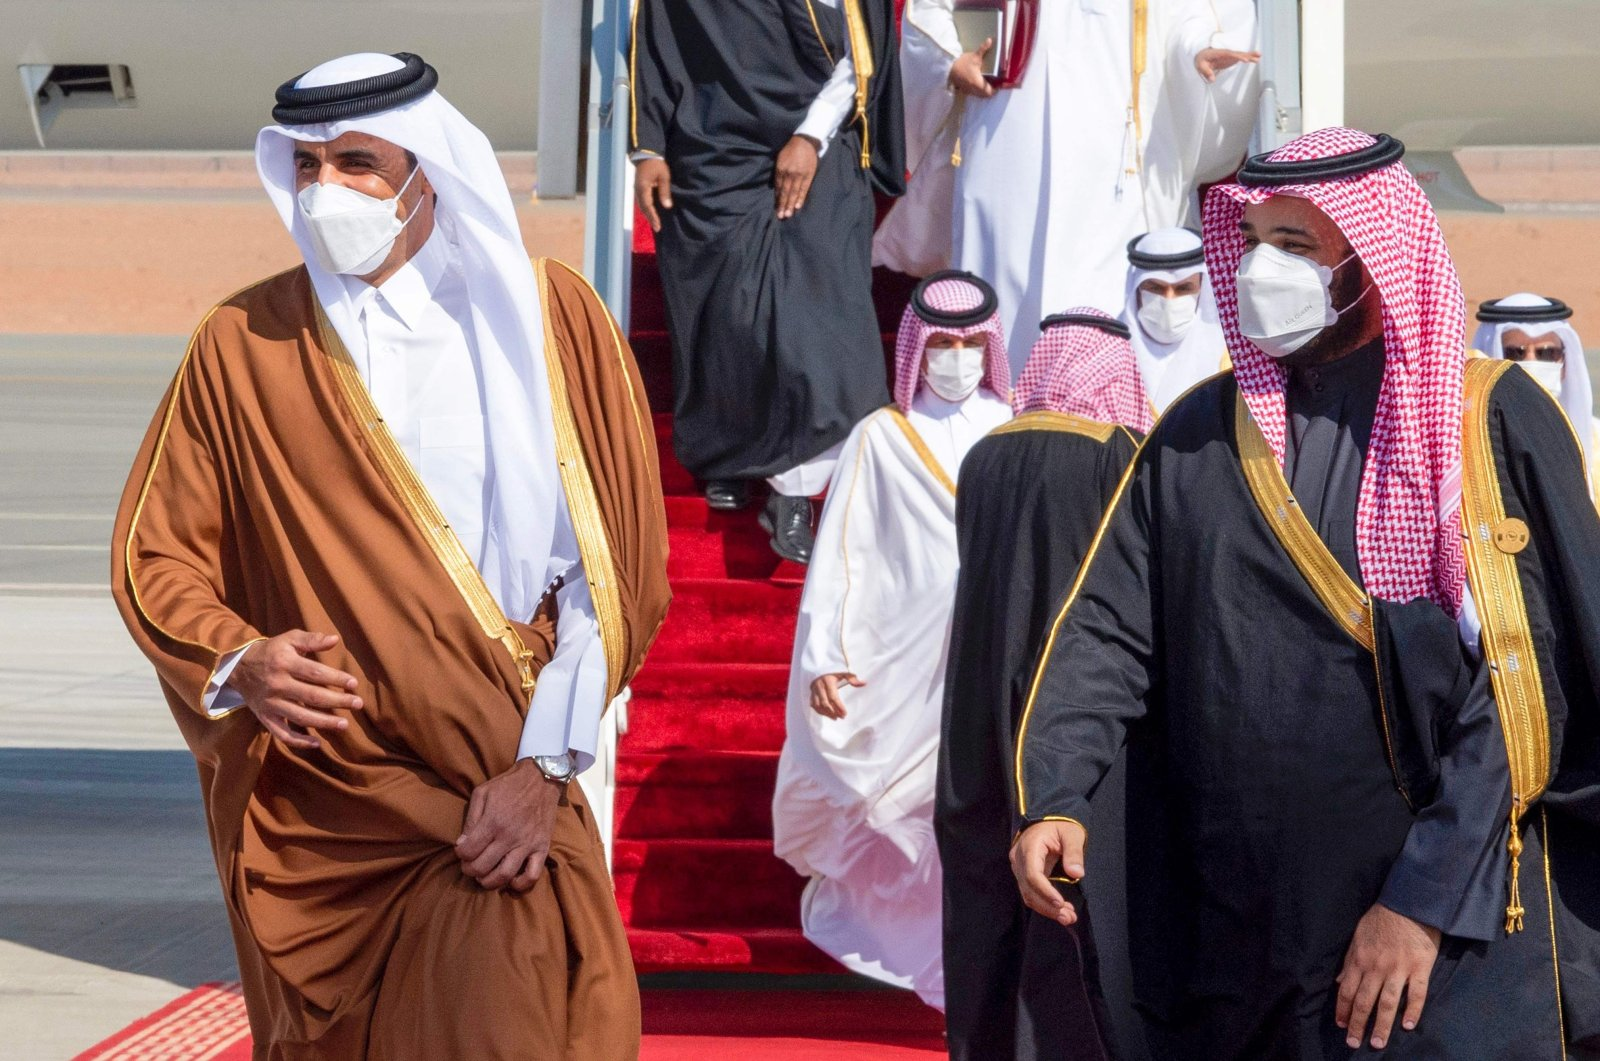 A handout photo made available by the Saudi Royal Court shows Saudi Arabia's Crown Prince Mohammed bin Salman welcoming Emir of Qatar, Sheikh Tamim bin Hamad Al Thani upon his arrival to attend the 41st annual six-member Gulf Cooperation Council (GCC) Summit at Al-Ula, Saudi Arabia, Jan. 5, 2021. (AFP Photo)